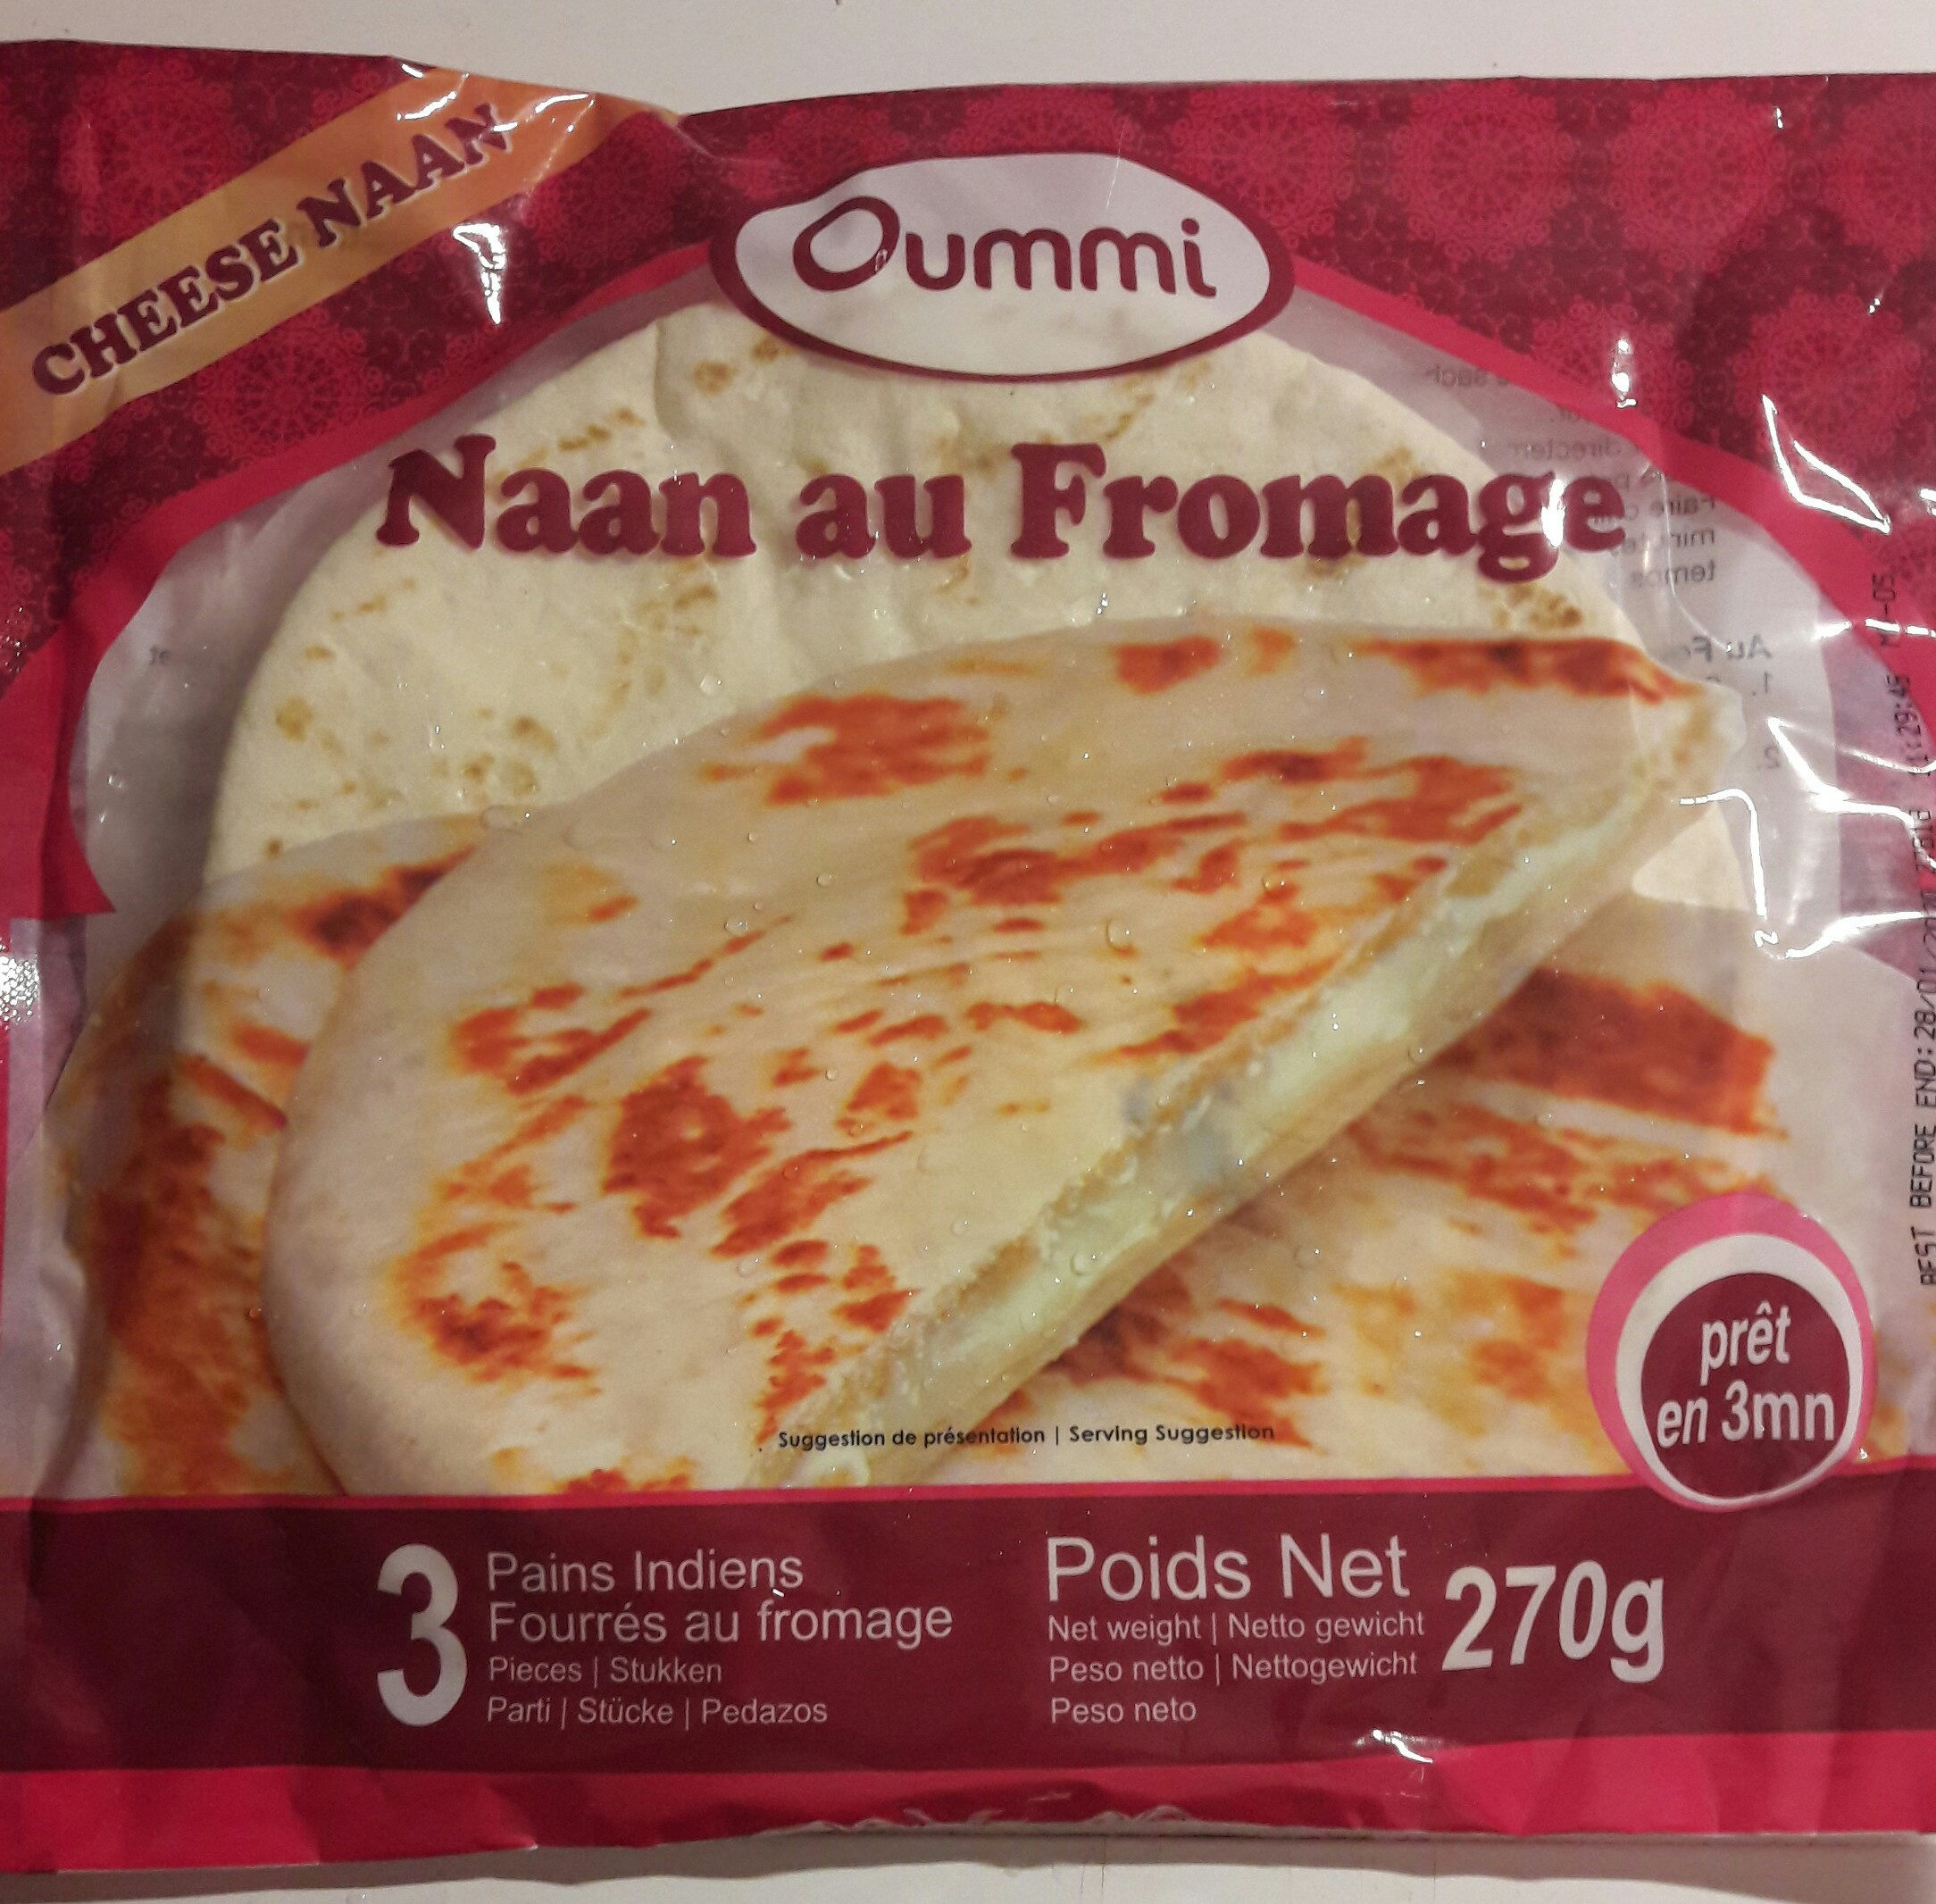 Naan au fromage - Prodotto - fr